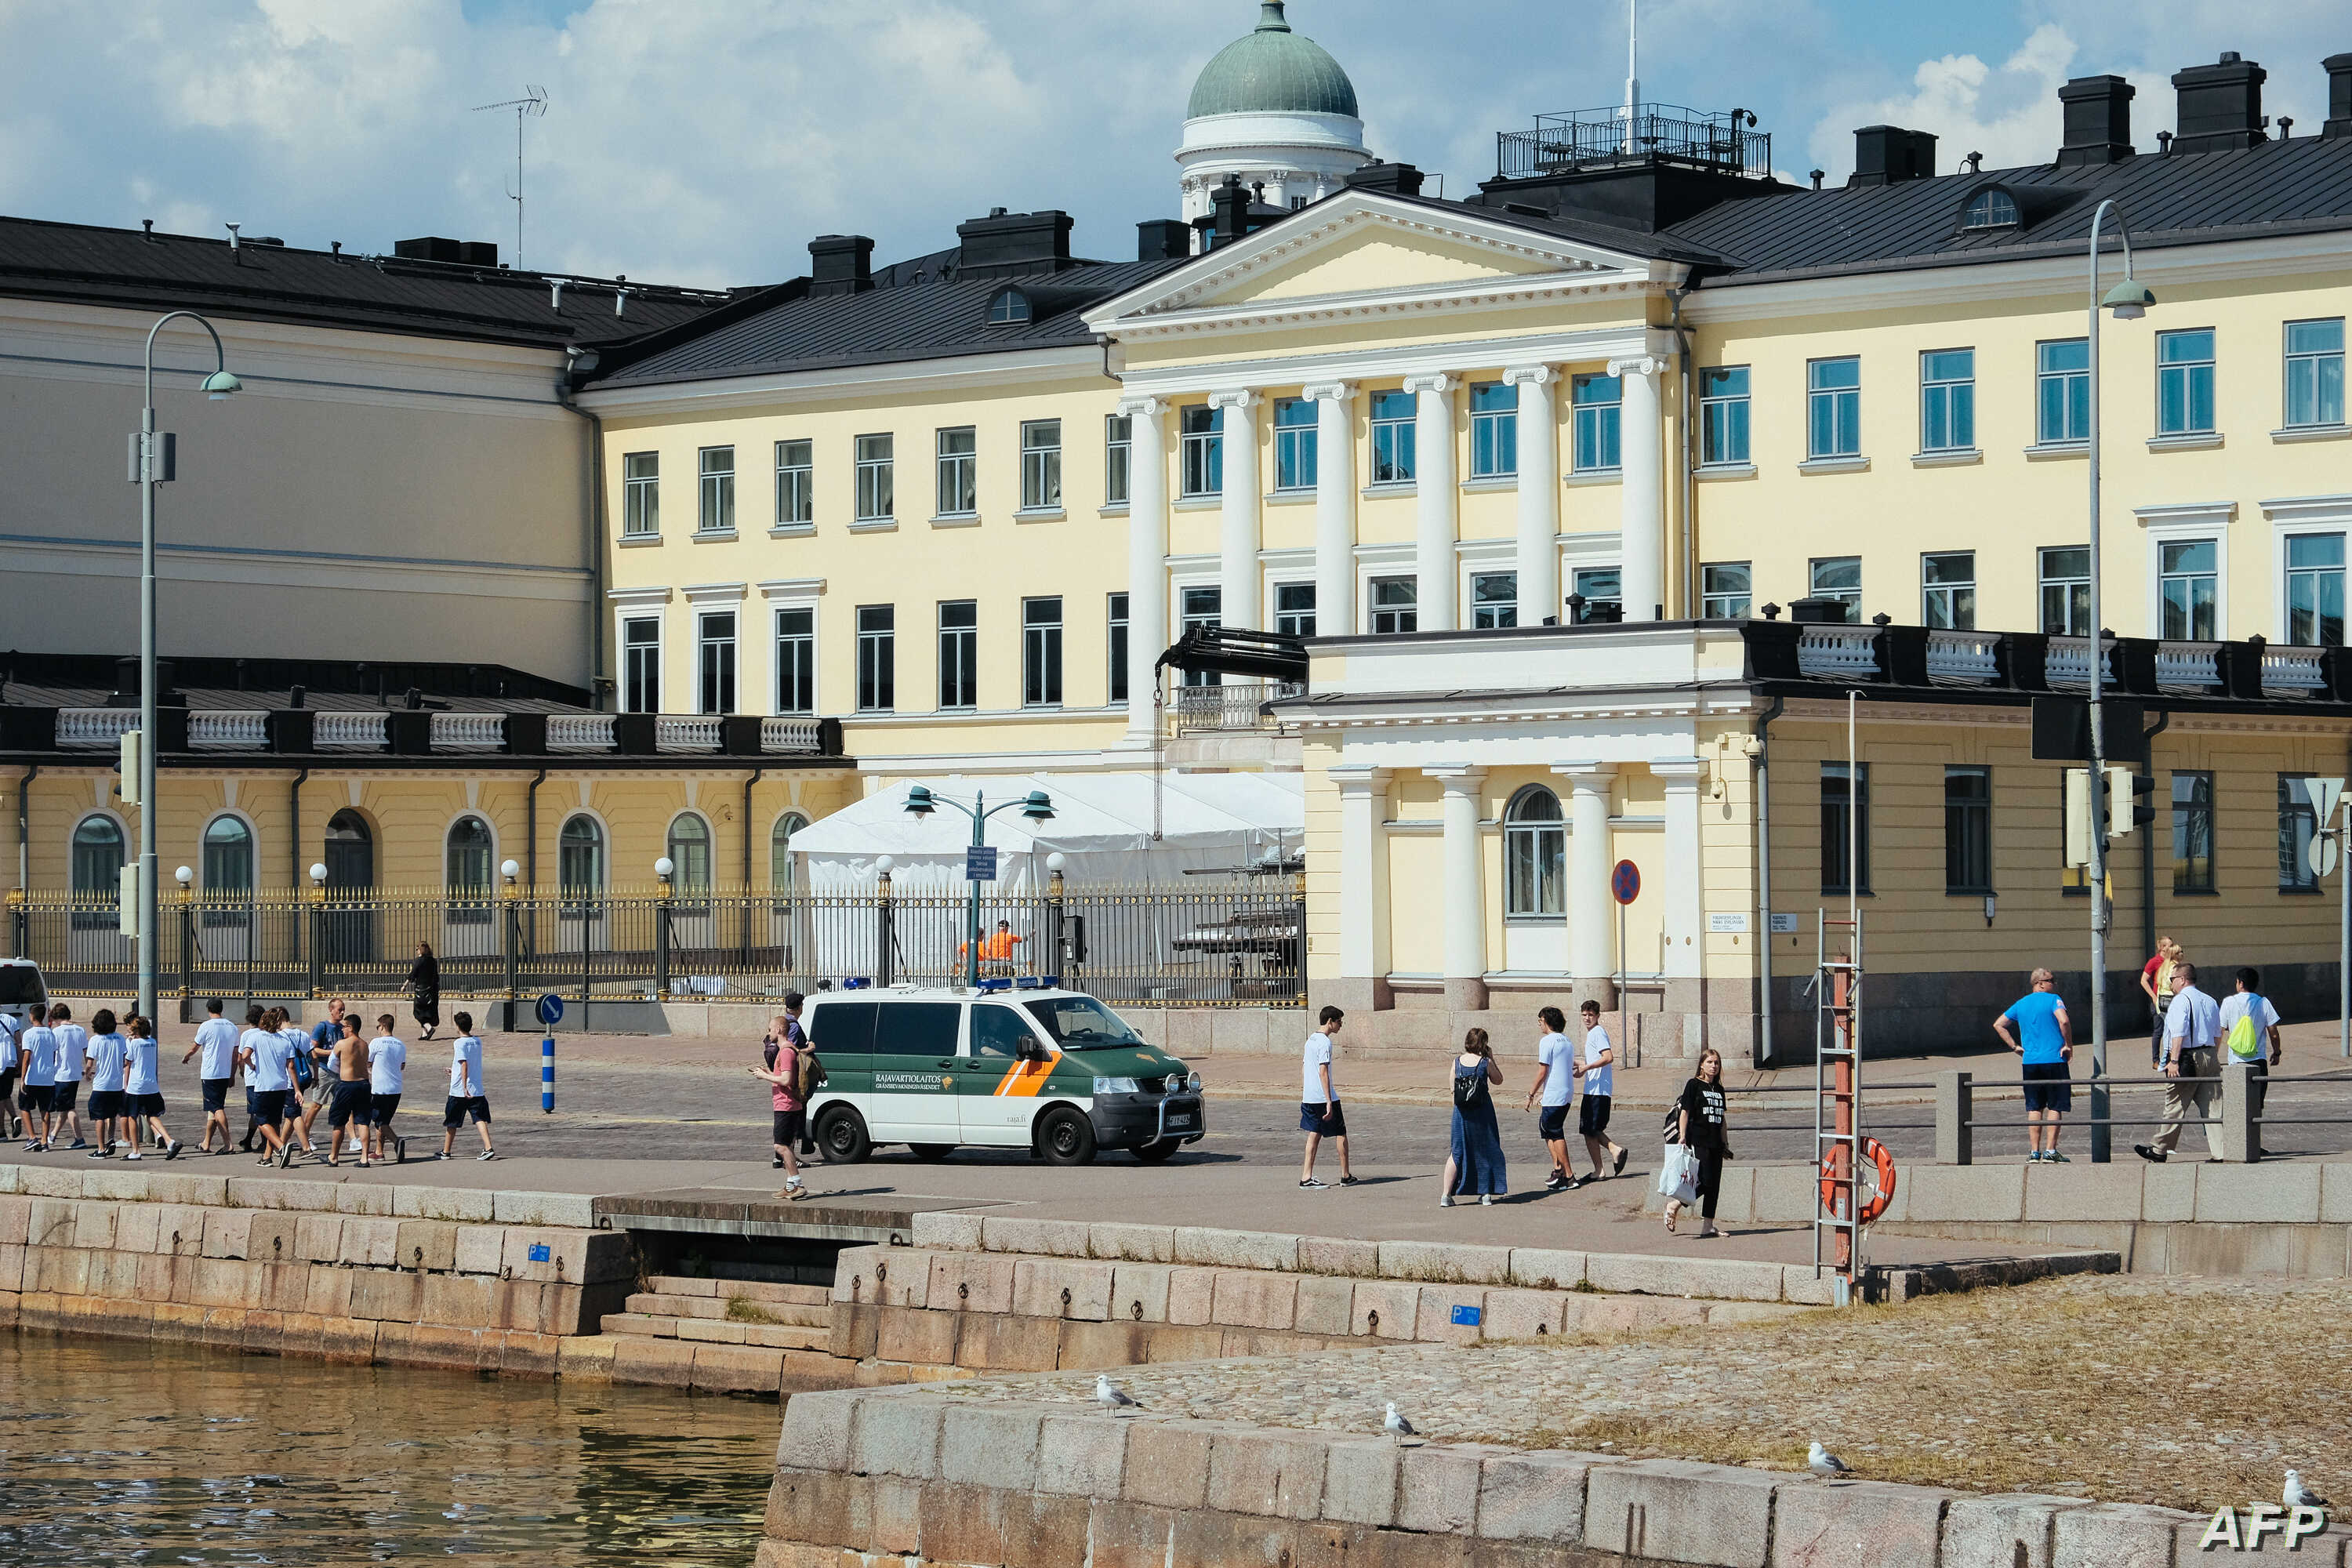 Police are seen in front of the Presidential Palace in Helsinki, Finland on July 14, 2018, ahead of the meeting between US President Donald Trump and his Russian counterpart Vladimir Putin.